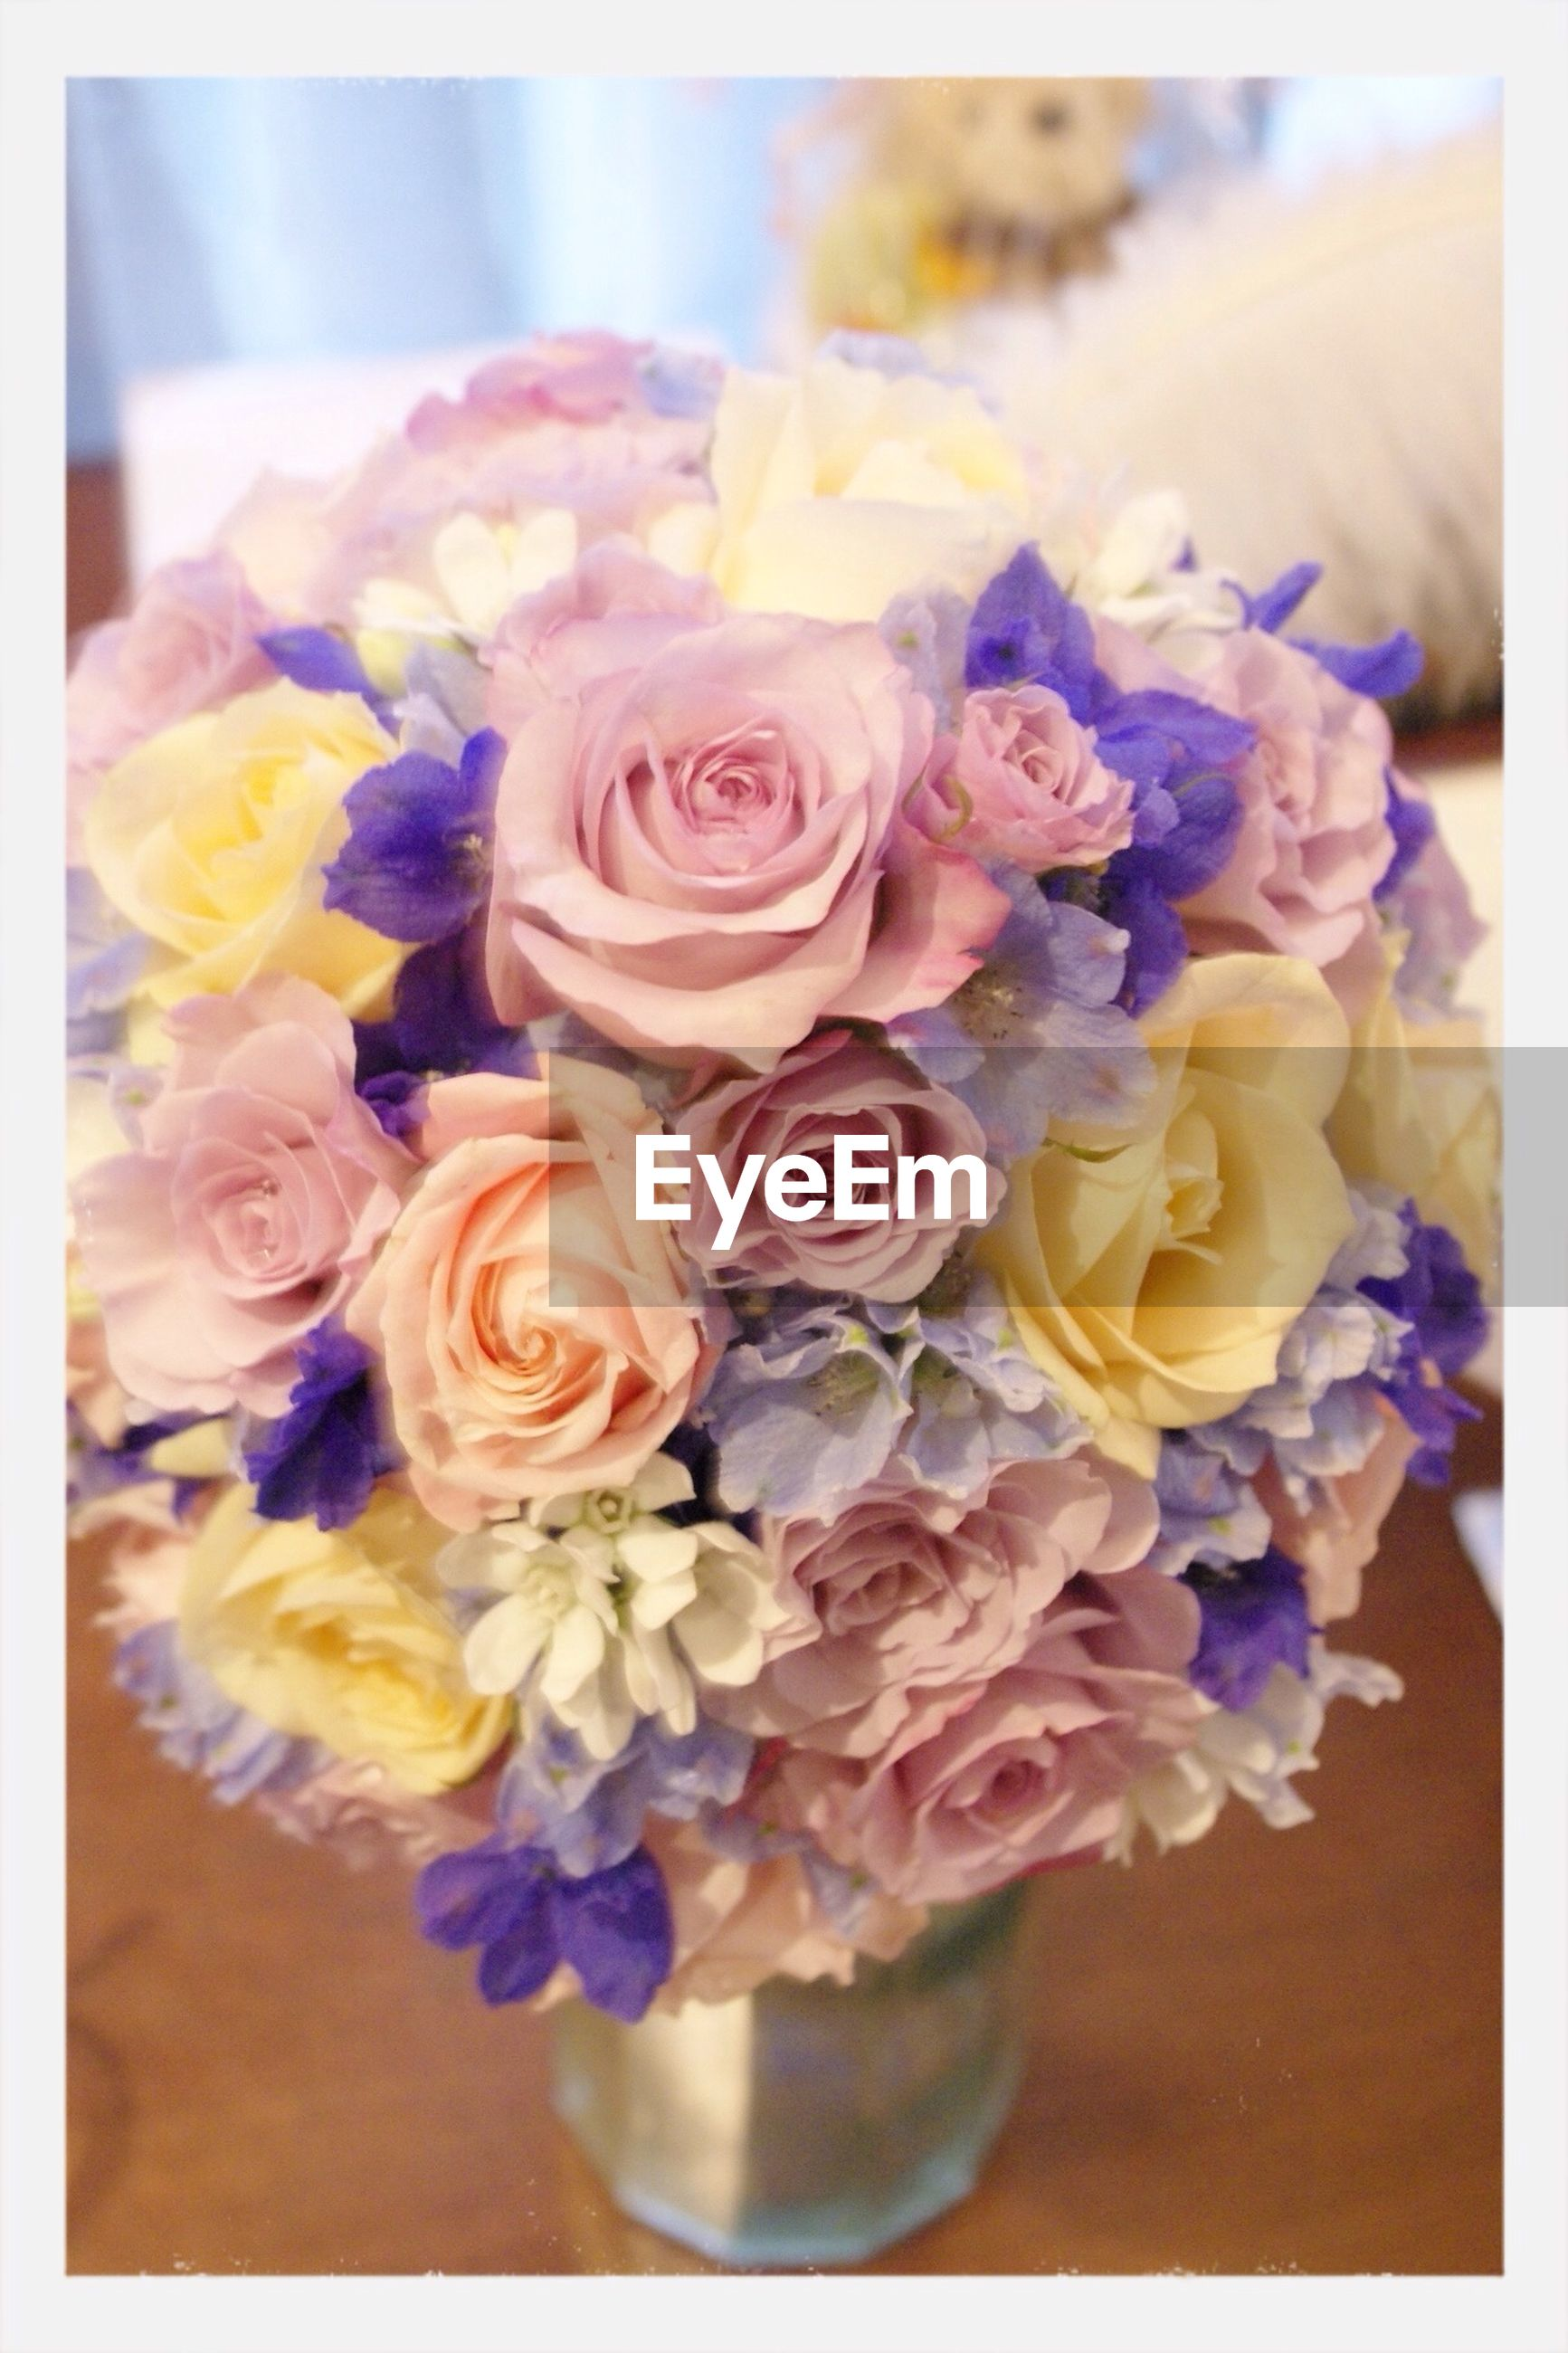 flower, indoors, freshness, petal, fragility, flower head, bouquet, transfer print, bunch of flowers, rose - flower, vase, auto post production filter, close-up, table, multi colored, still life, flower arrangement, high angle view, variation, beauty in nature